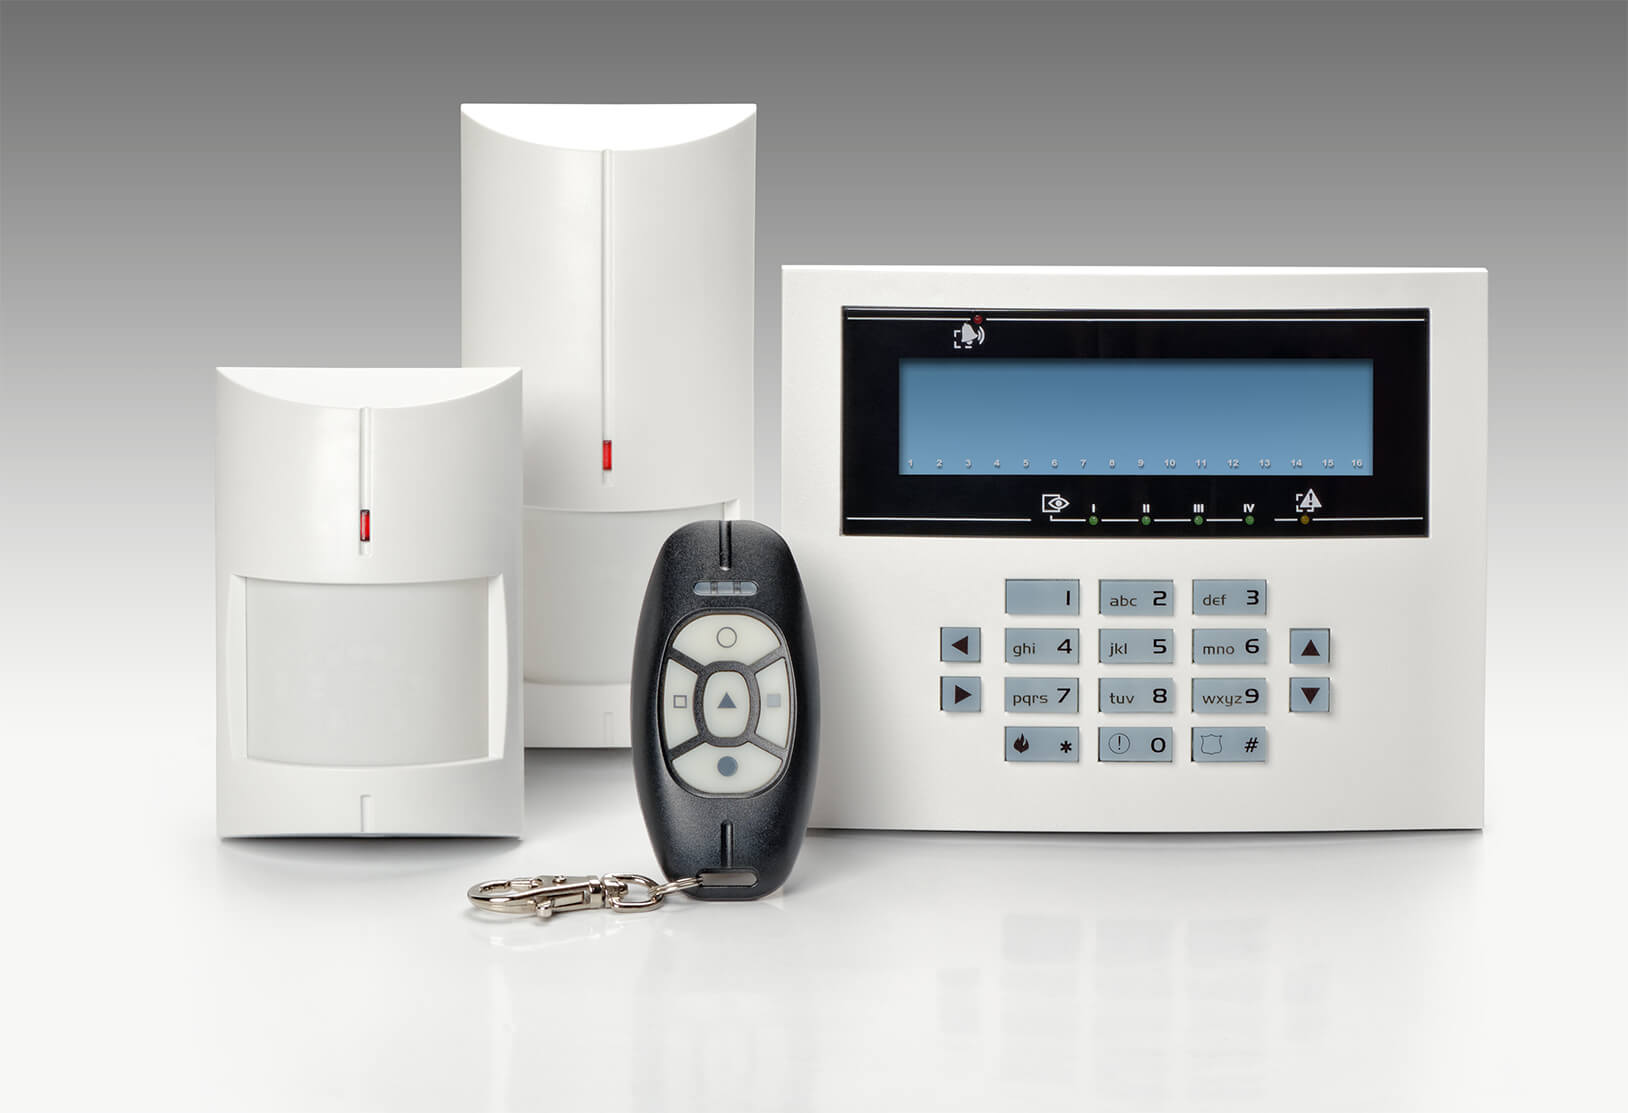 Burglar Alarms Repair in City of London EC1 - Local City of London EC1 alarm engineers.Call 02078872244 - See cost/price for burglar alarm repair and book your alarm engineer. No Hidden charges,No Contracts, Book as you need.Engineers on demand.All alarm makes repaired.Same day service ability.